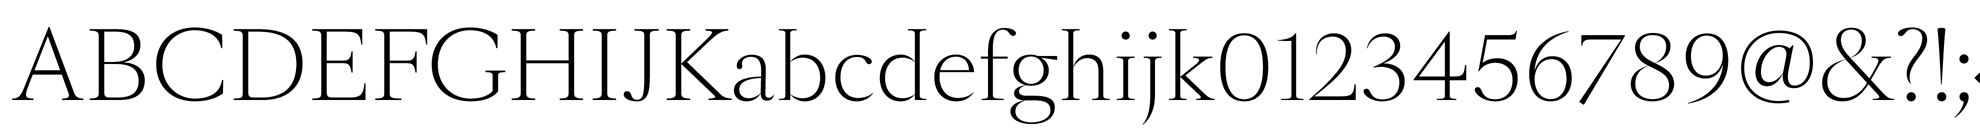 SangBleu Serif Light